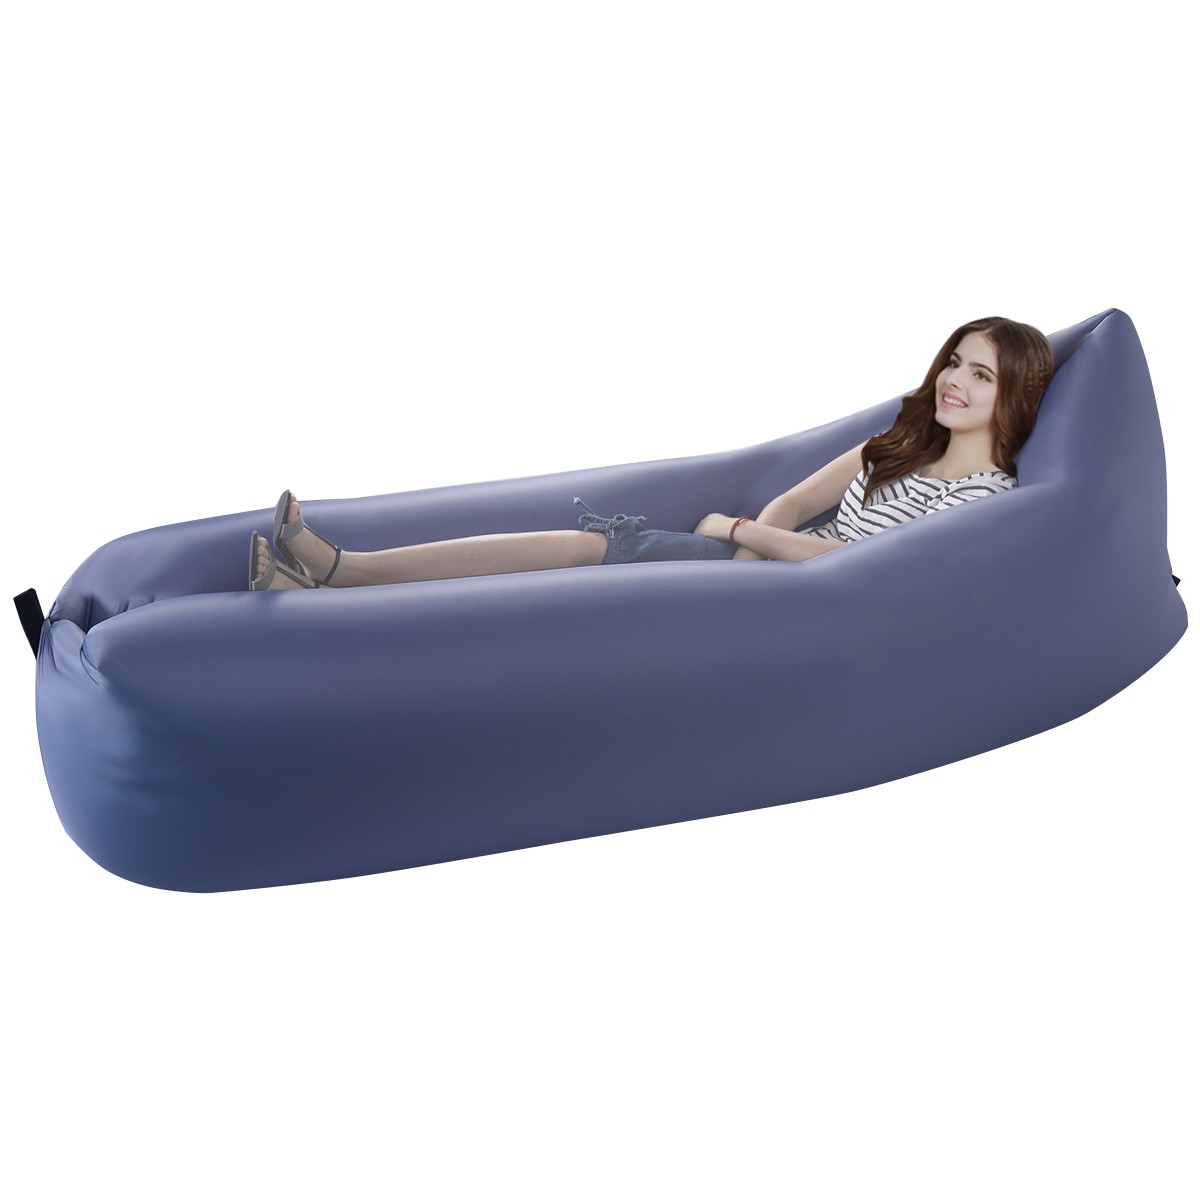 Awesome Outdoor Lazy Inflatable Couch Air Sleeping Sofa Lounger Bag Camping Bed  Portable Blue   Walmart.com